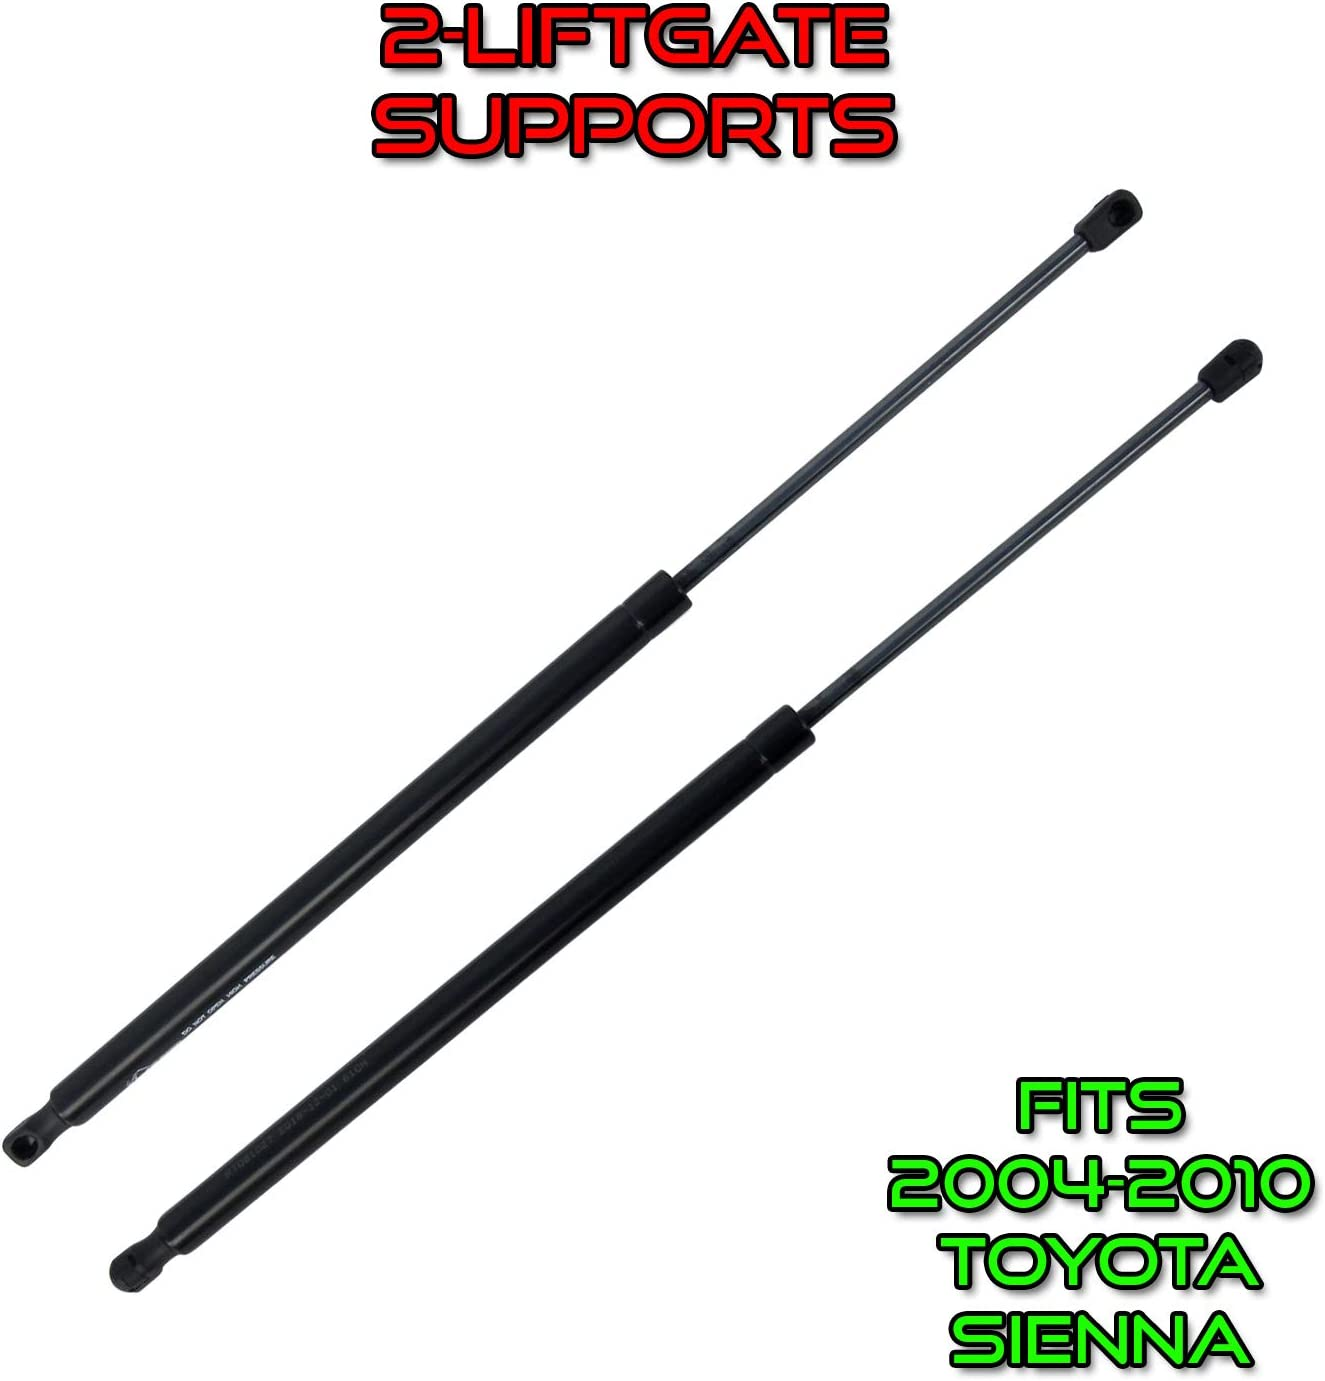 25 Liftgate Door Support RT081027 SG229013 6140 Qty 2 Rugged Tuff Rear Hatch Supports Compatible With 2004-2010 Toyota Sienna